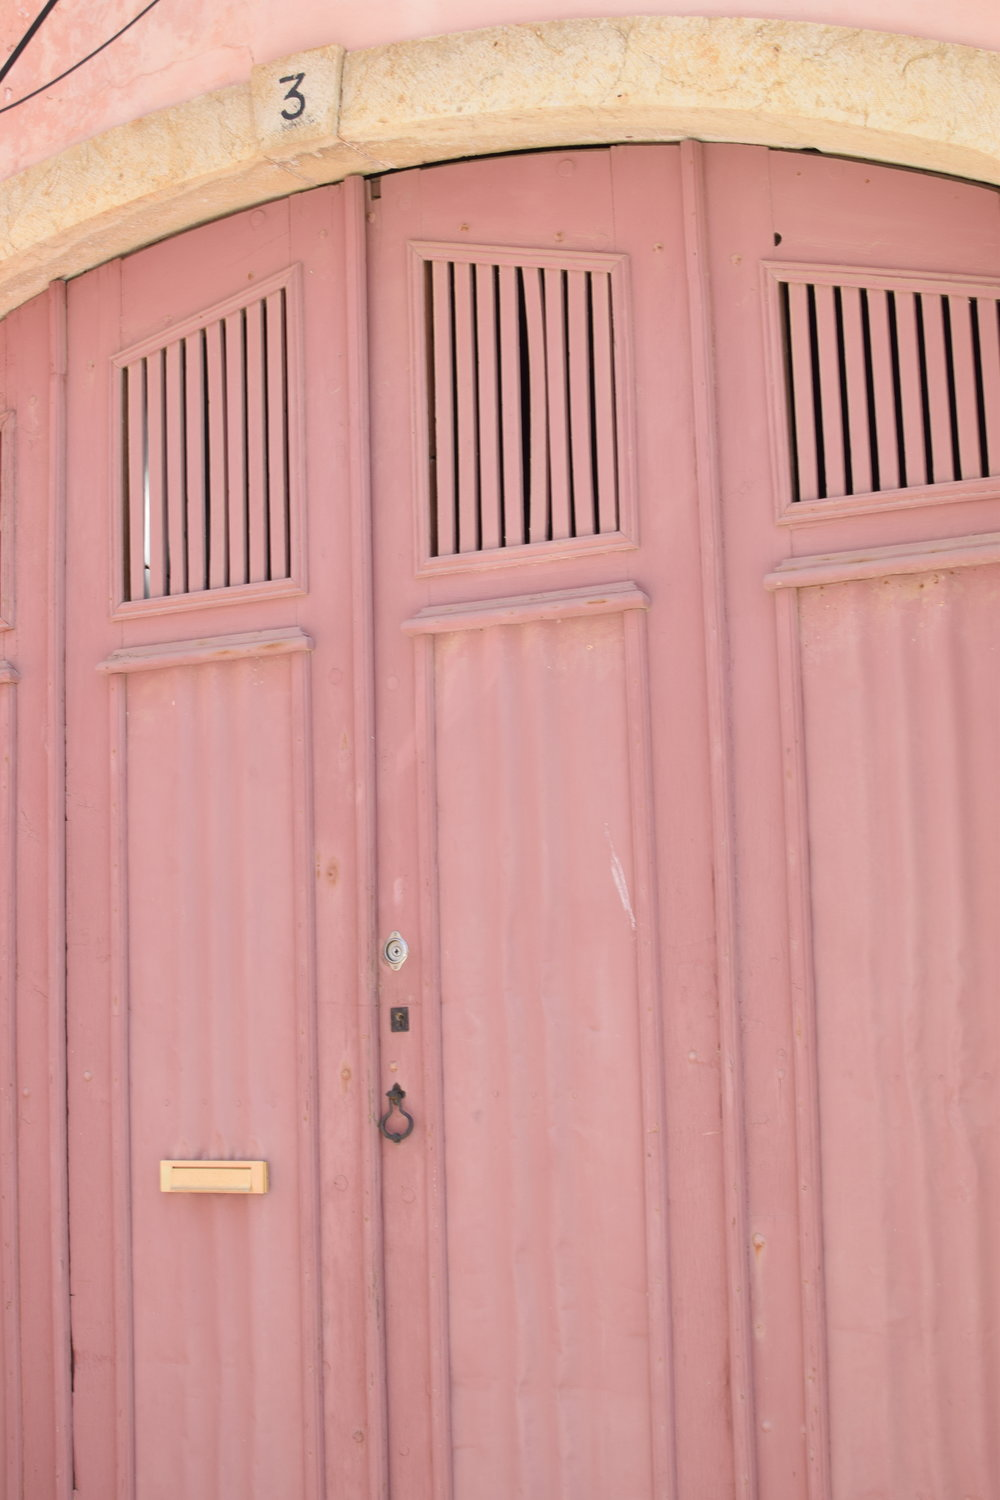 Pink door  | Finding colour inspiration in Lagos, Portugal | Soi 55 Travels8.JPG